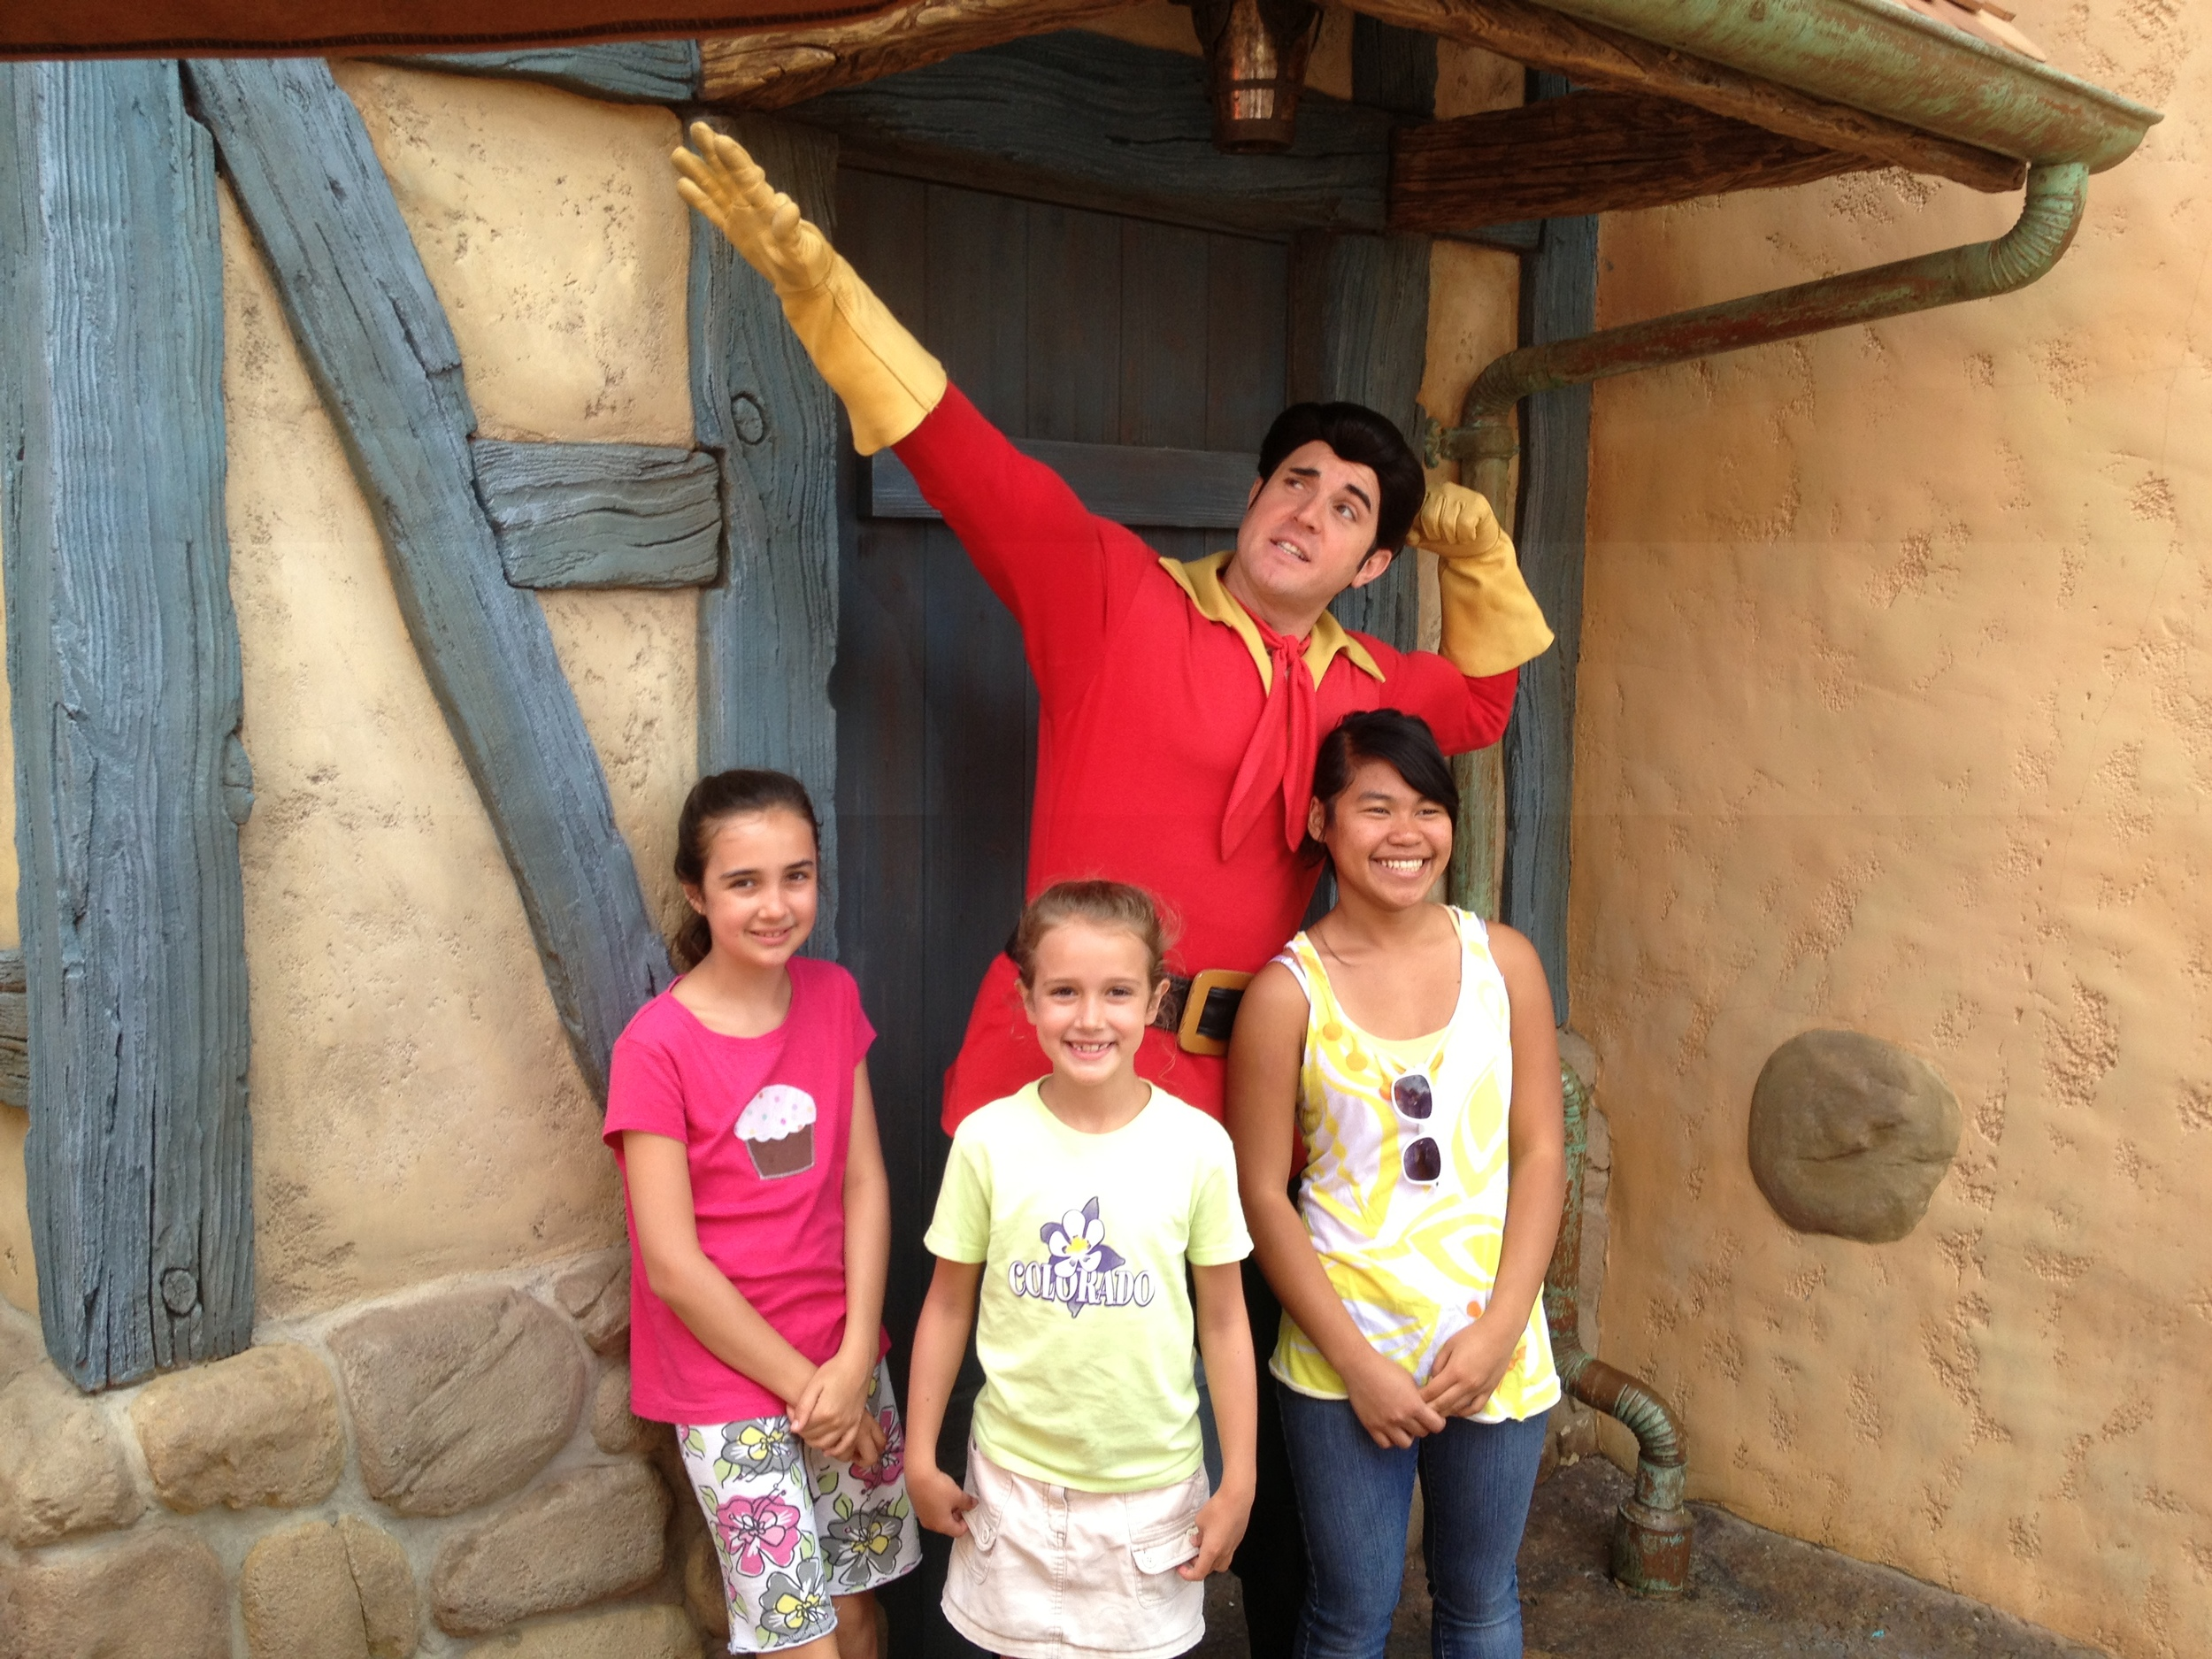 Gaston was as humble as ever.